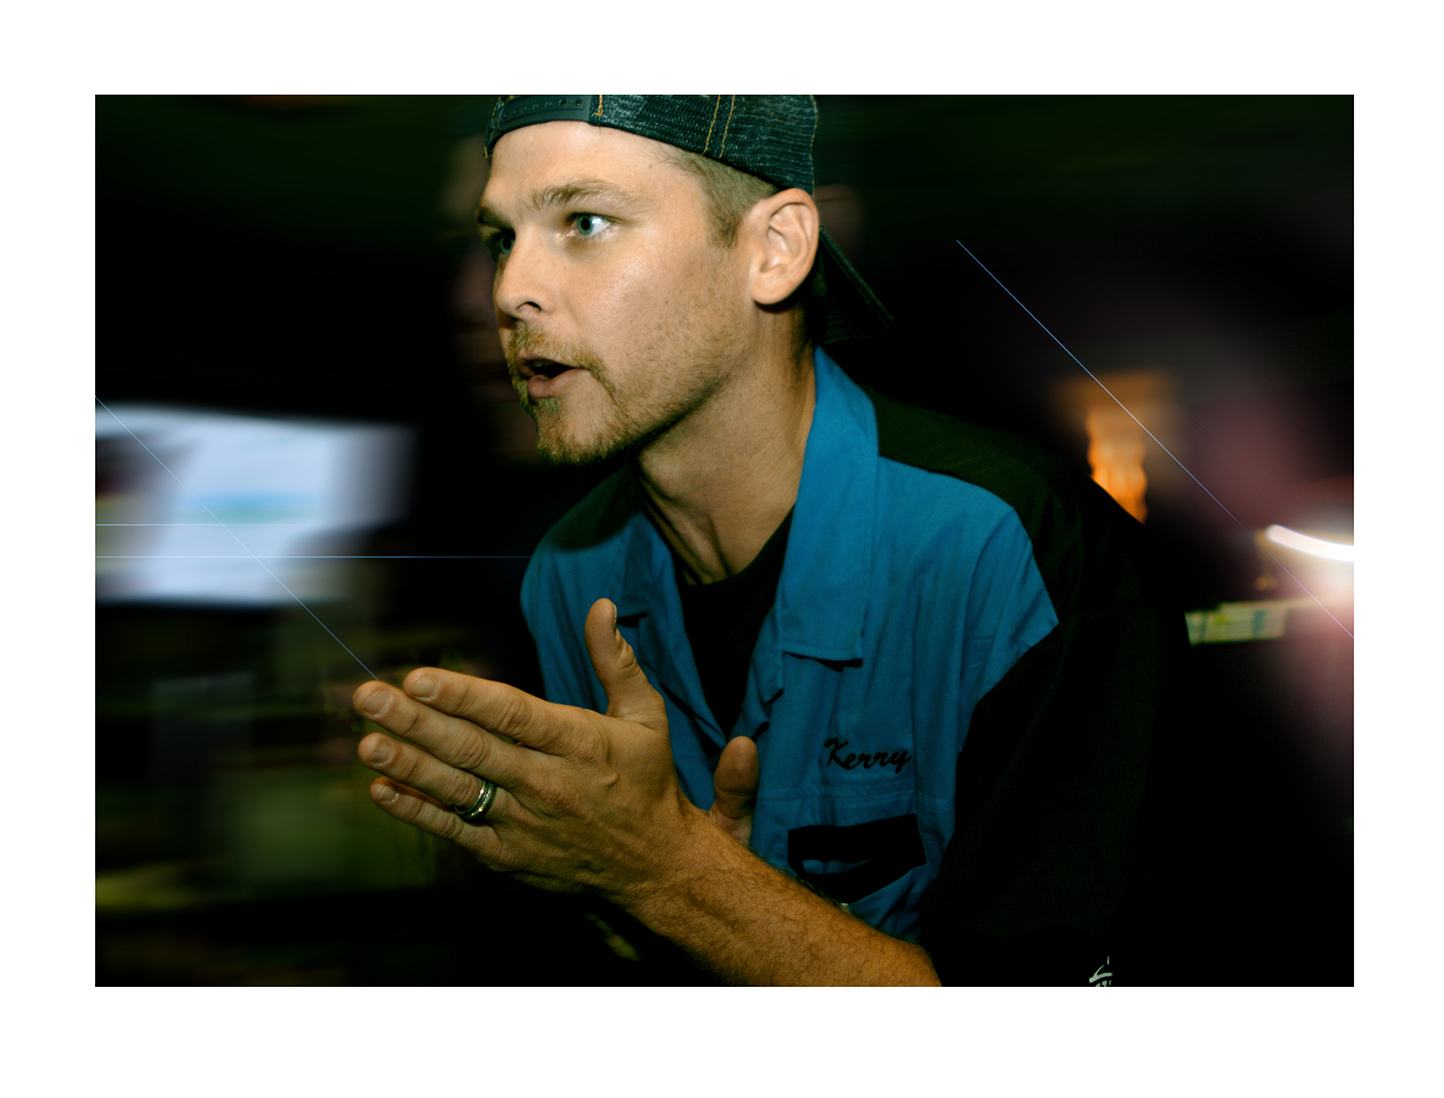 Kerry Wood bartending at Kerry Wood's Strike Zone Celebrity Bowling